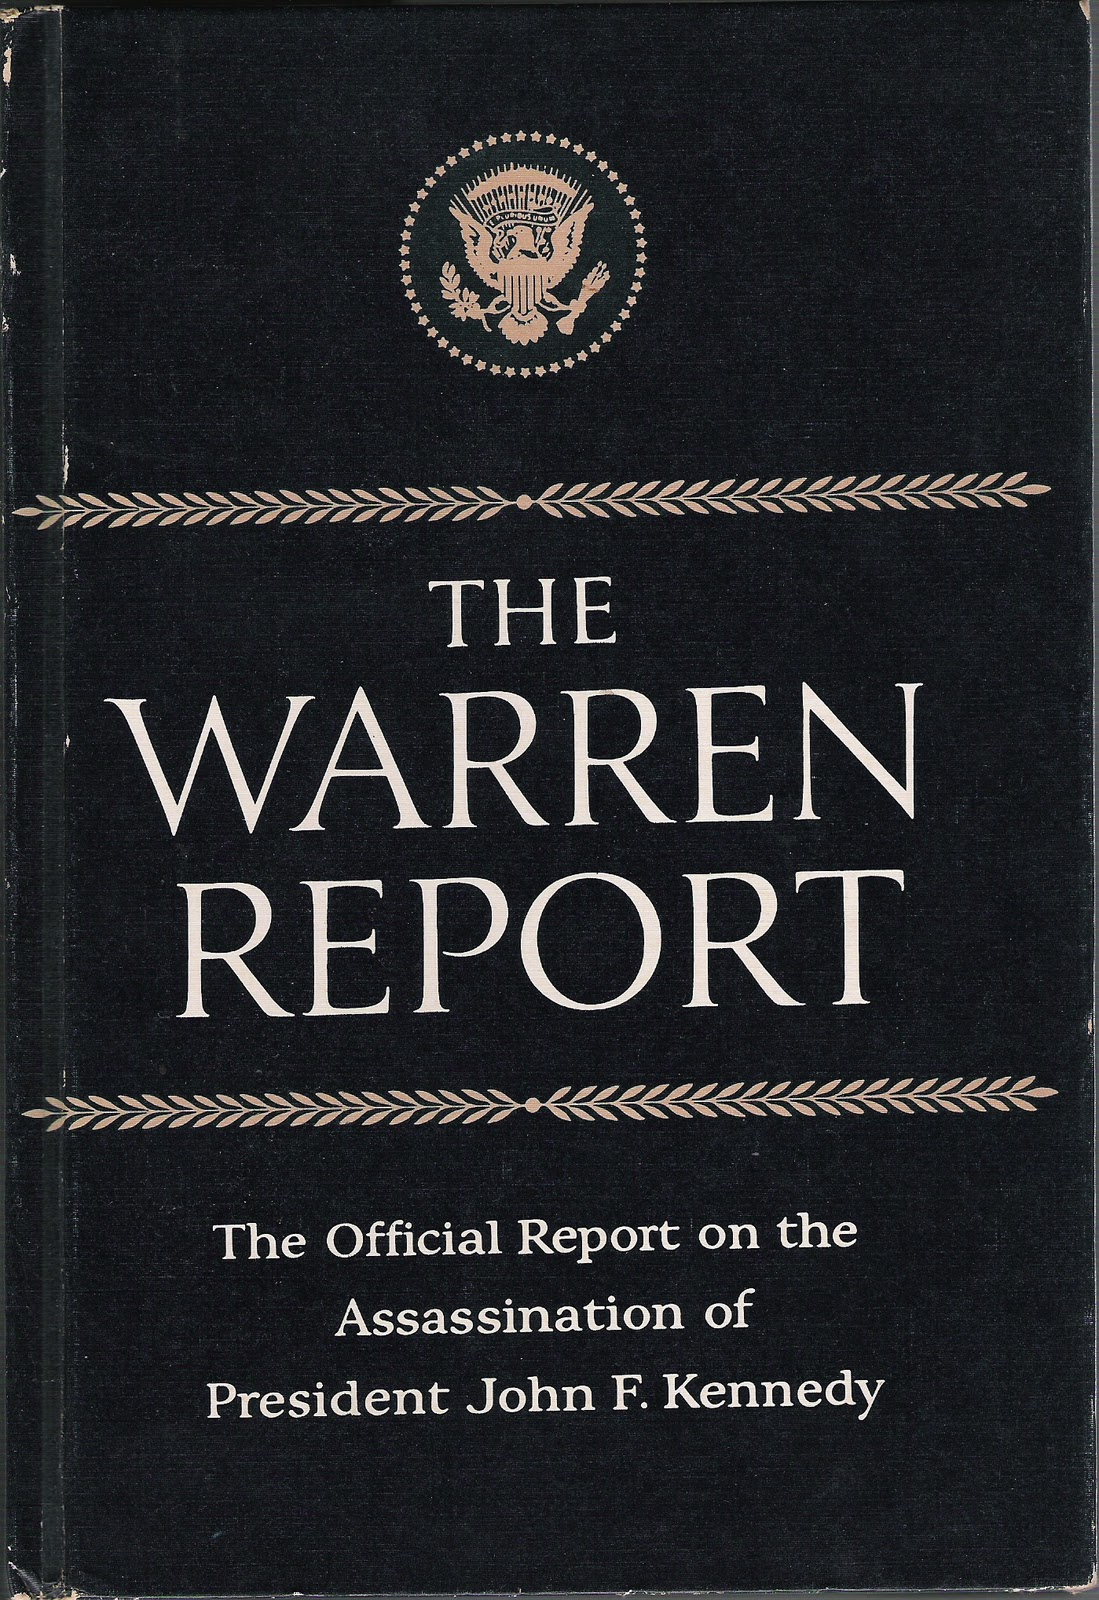 what the warren report did not tell americans about the kennedy assassination Most americans believe jfk conspiracy theories  by the warren commission, however, with the report stating that neither  about the kennedy assassination.